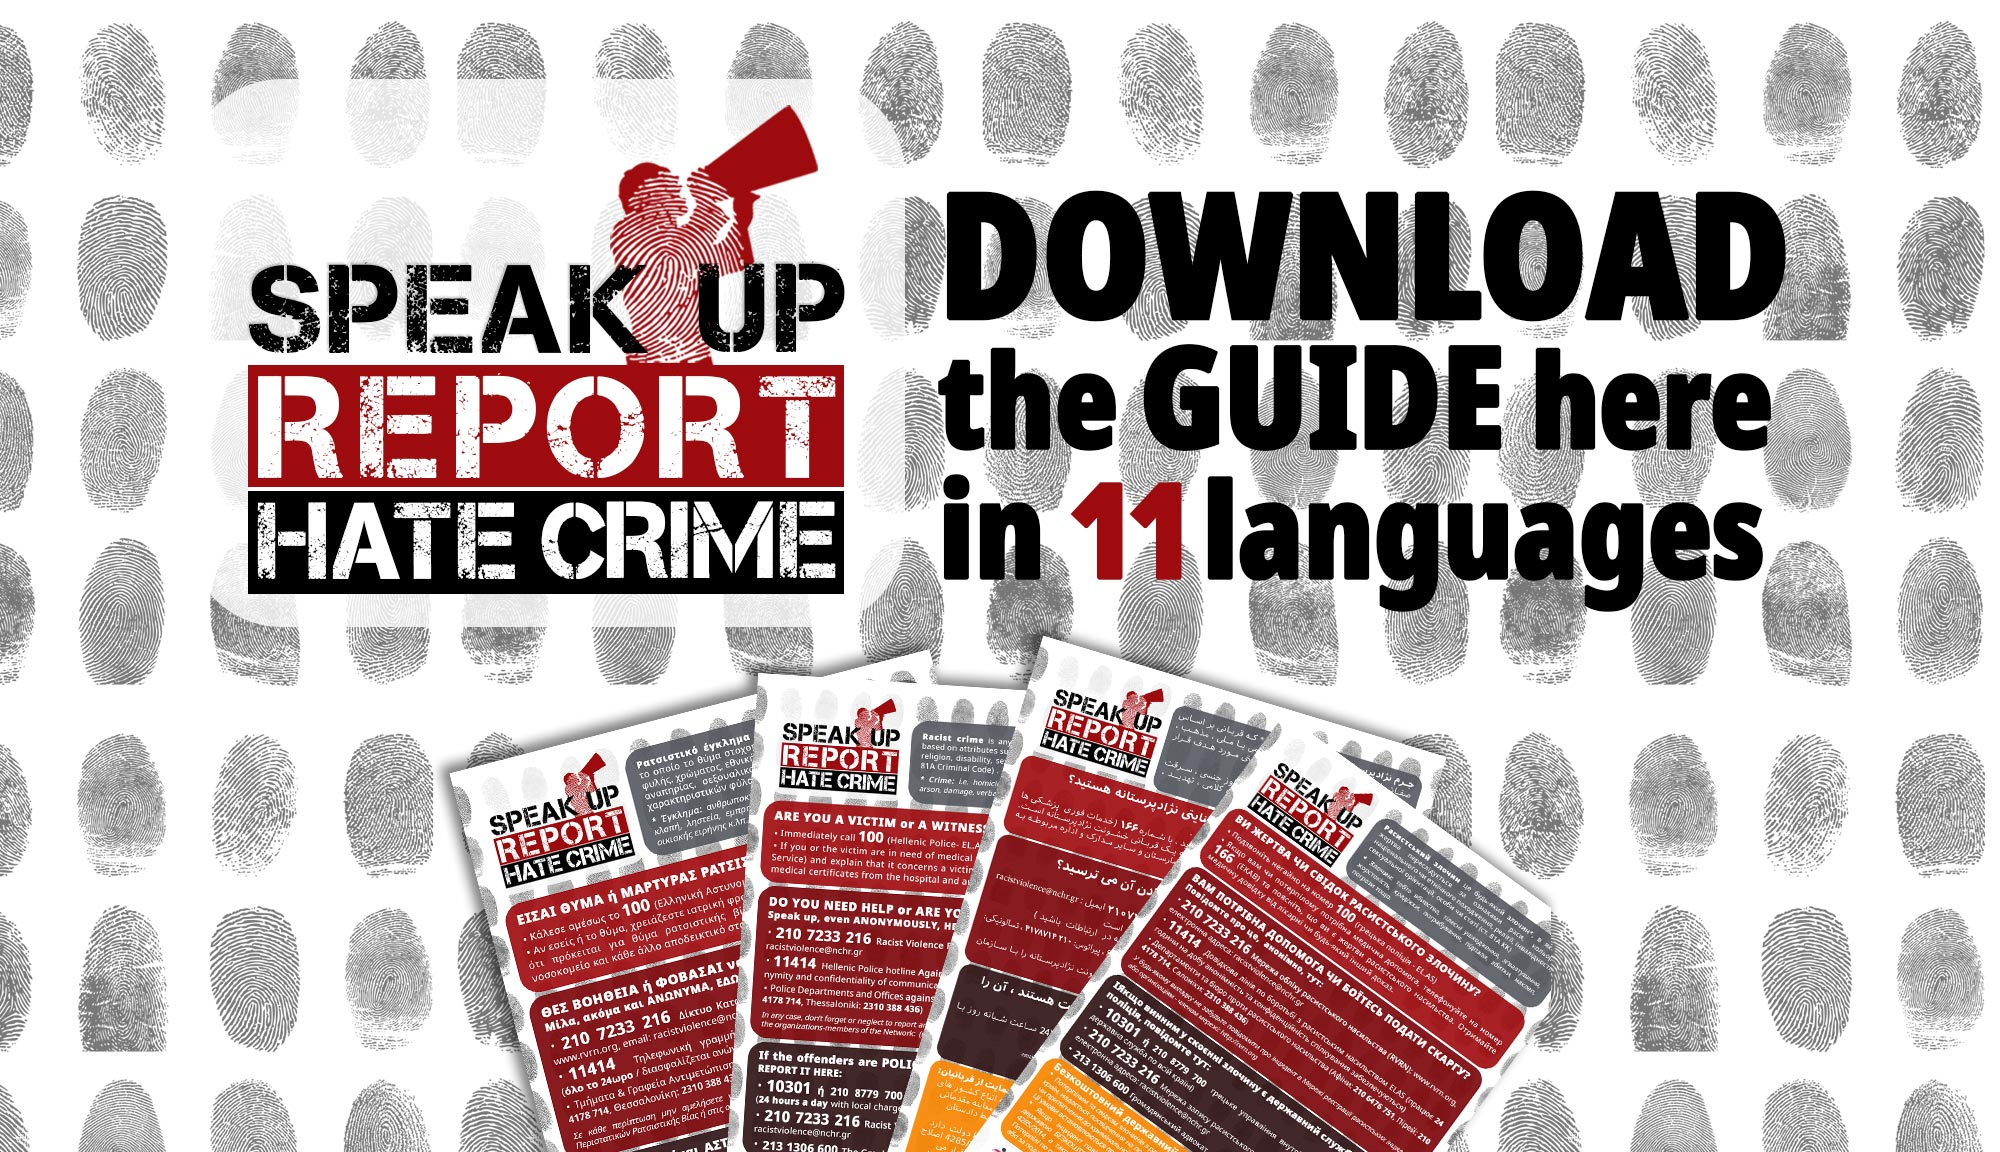 A Guide for reporting hate crime